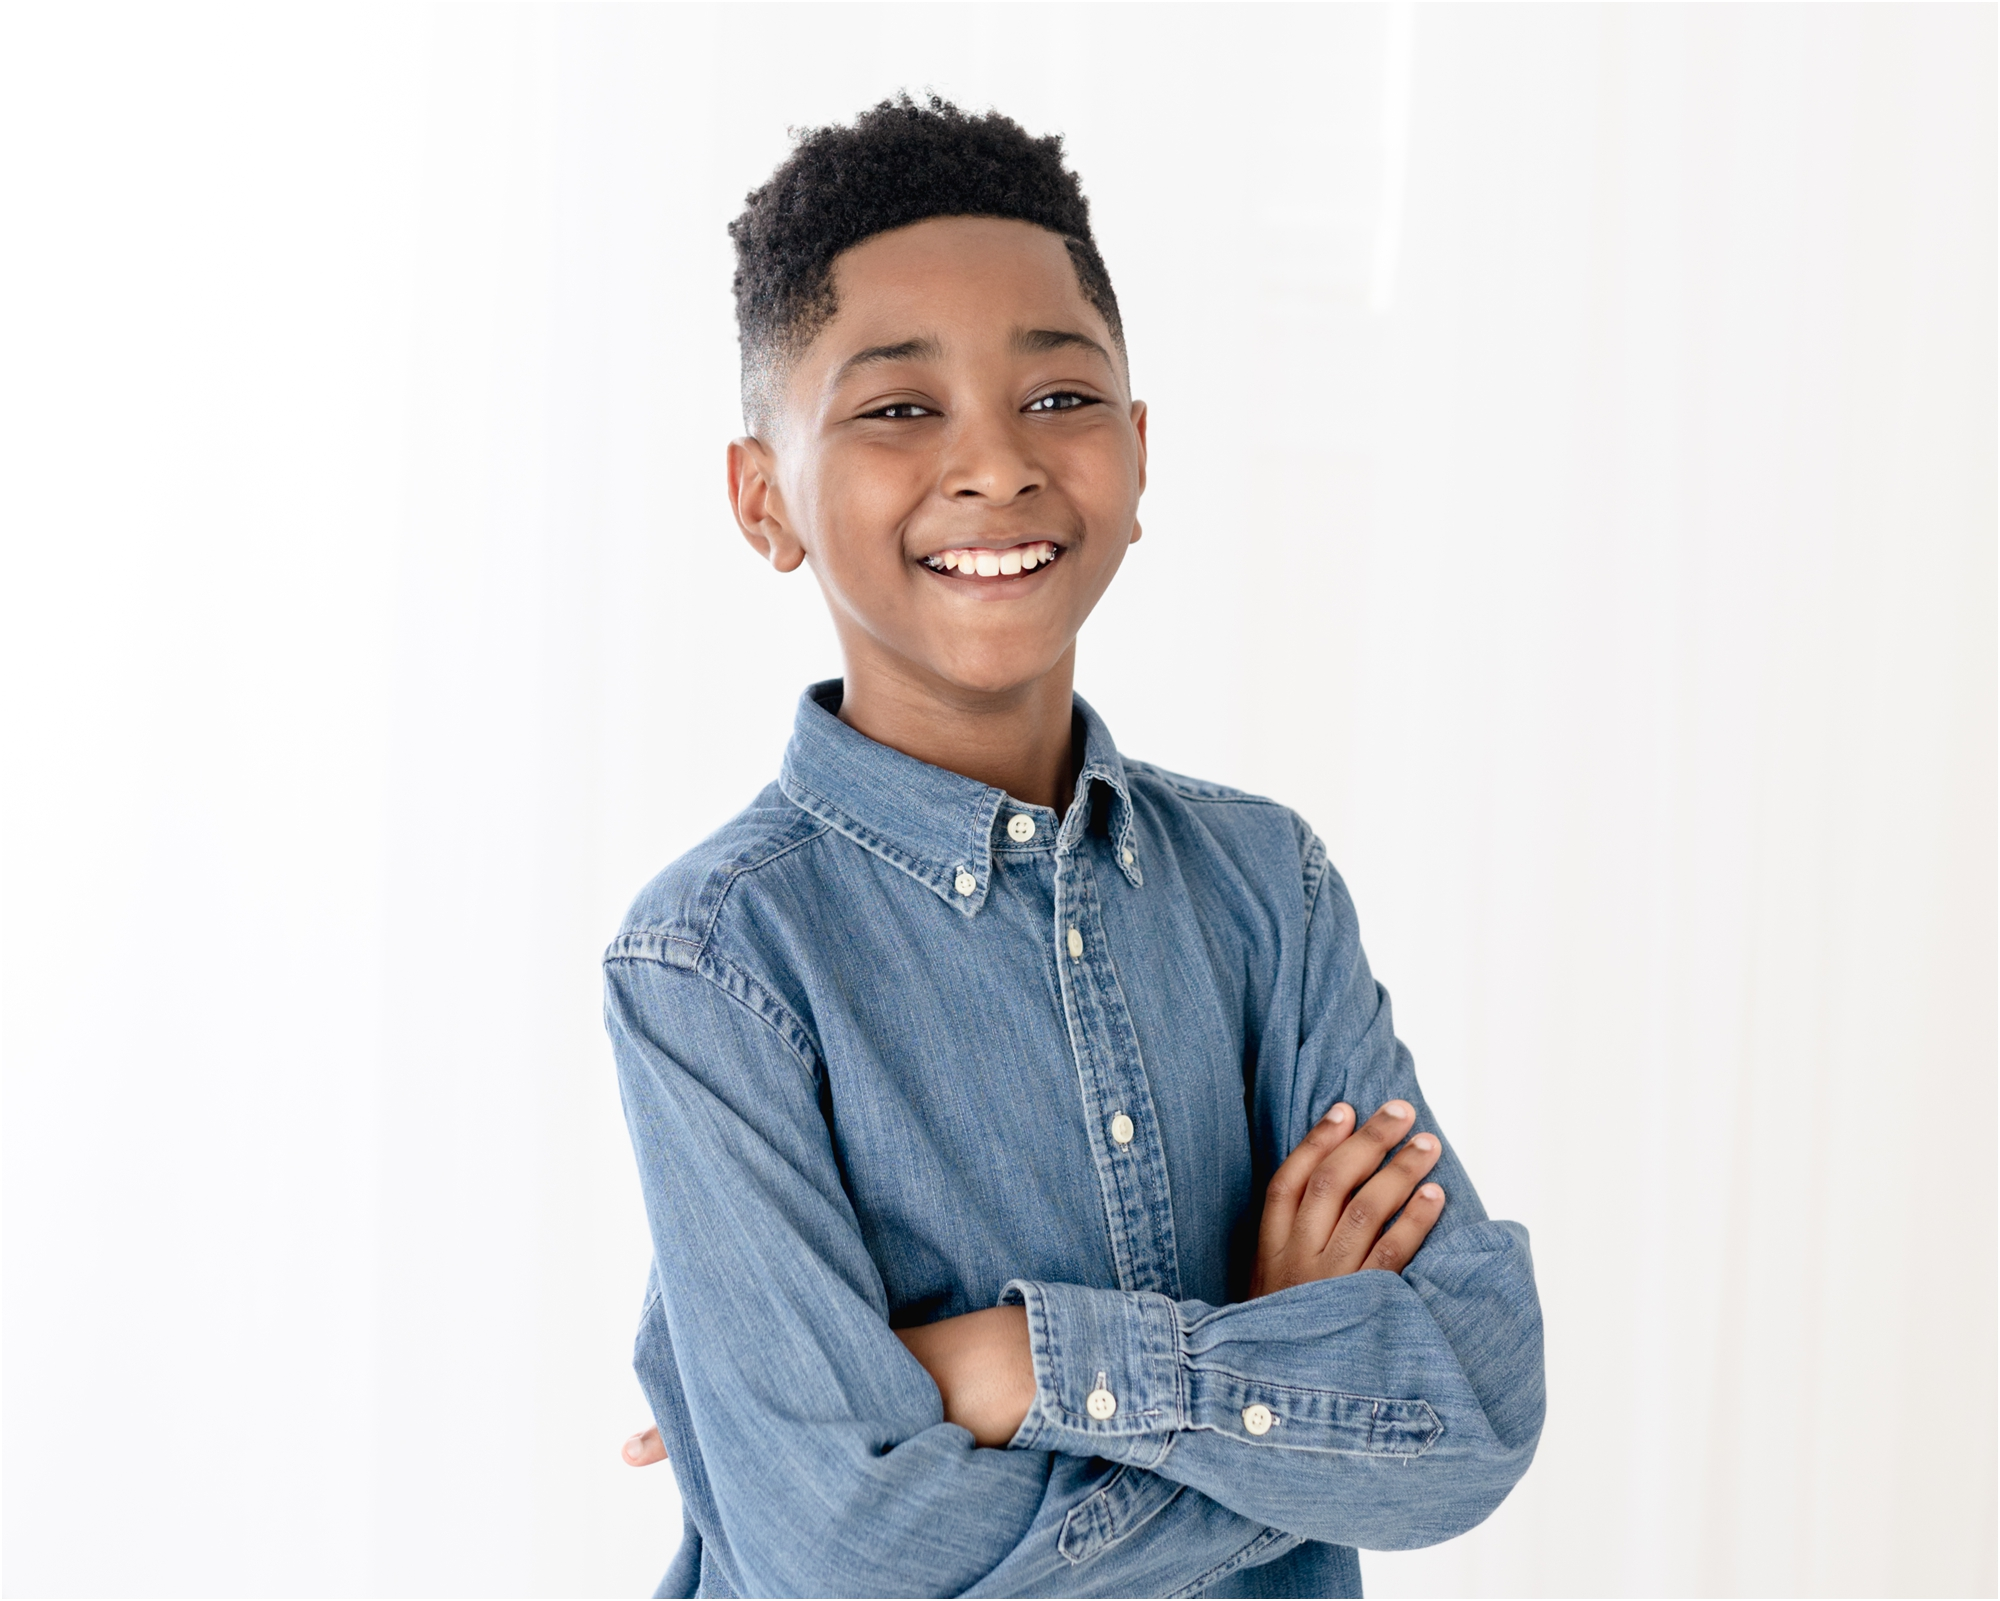 Boy smiling at camera during studio session with Houston photographer, Kelly of Lifetime of Clicks Photography.